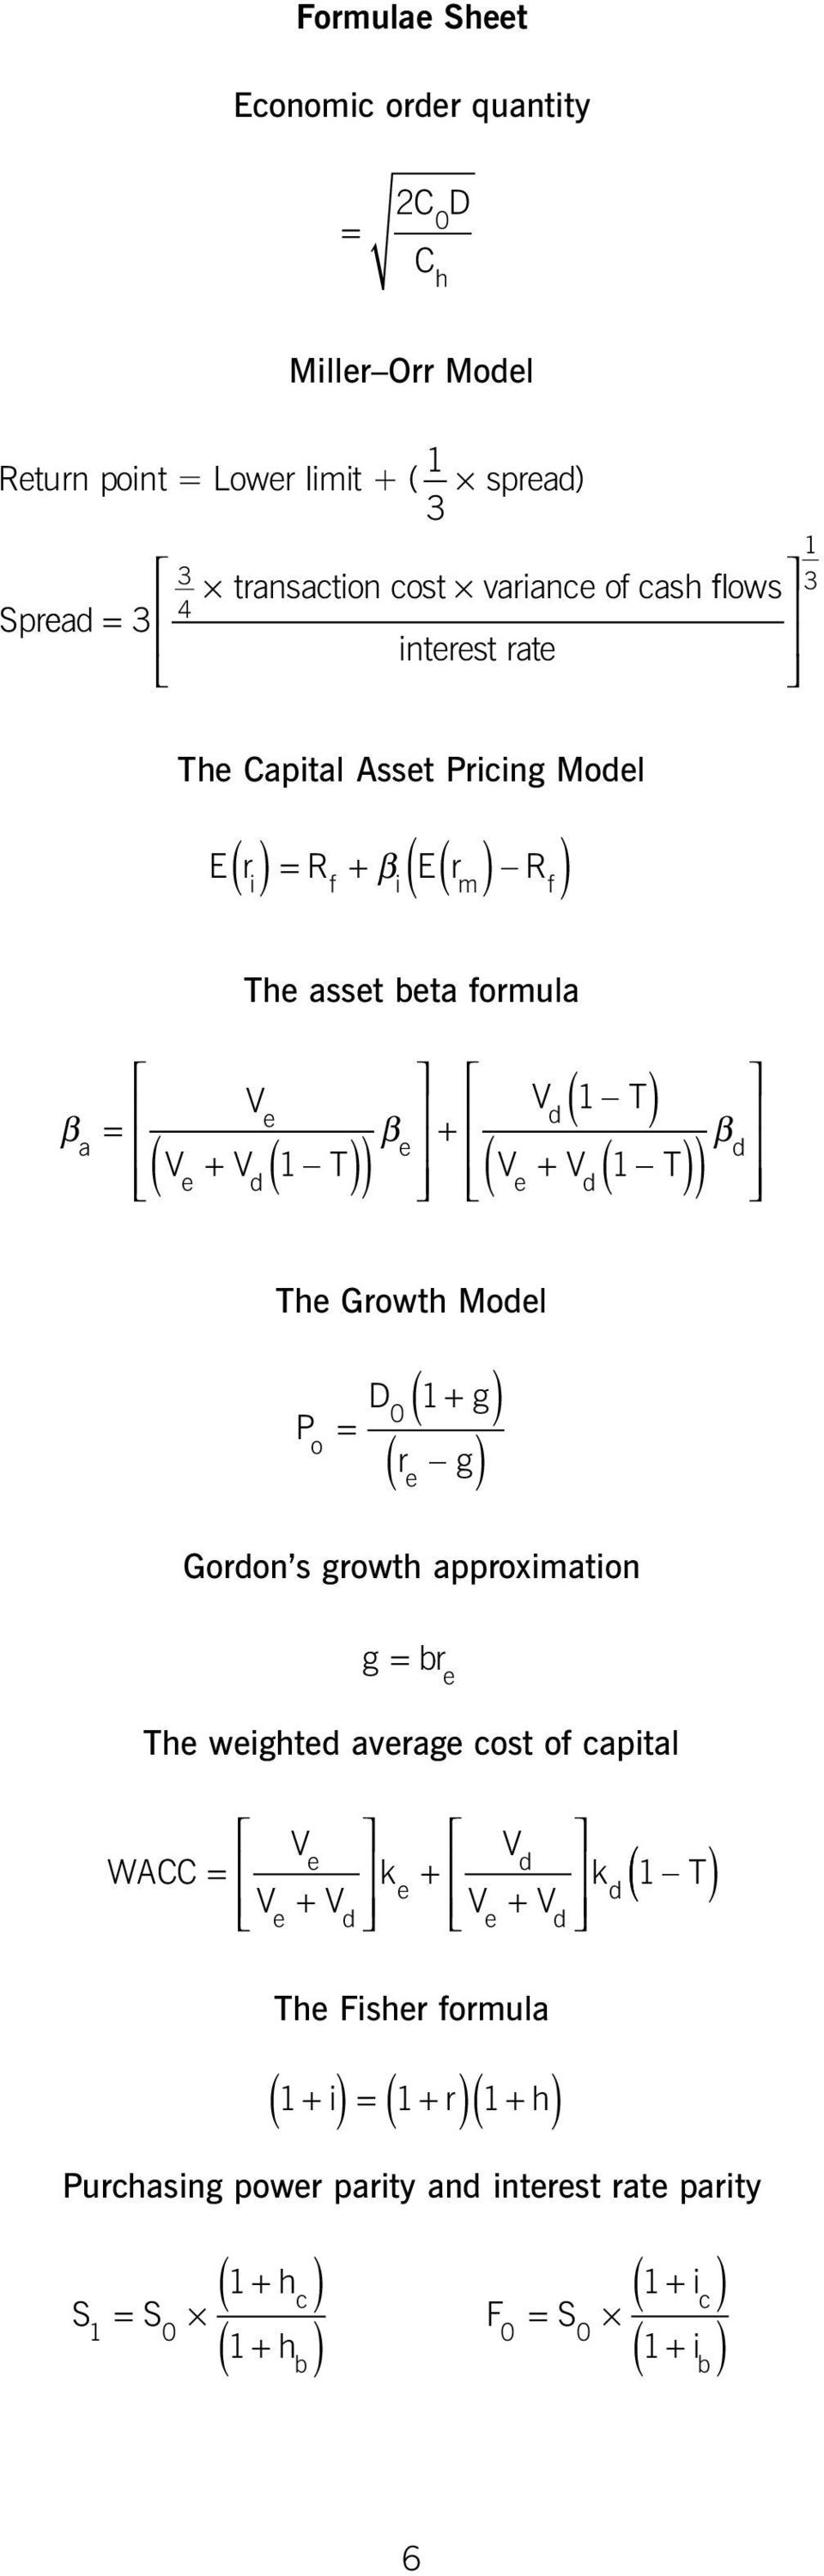 ) ( V + V 1 T e d( )) β d The Growth Model P o ( ) D + g 0 = 1 r g ( e ) Gordon s growth approximation g = br e The weighted average cost of capital V WACC V V k V